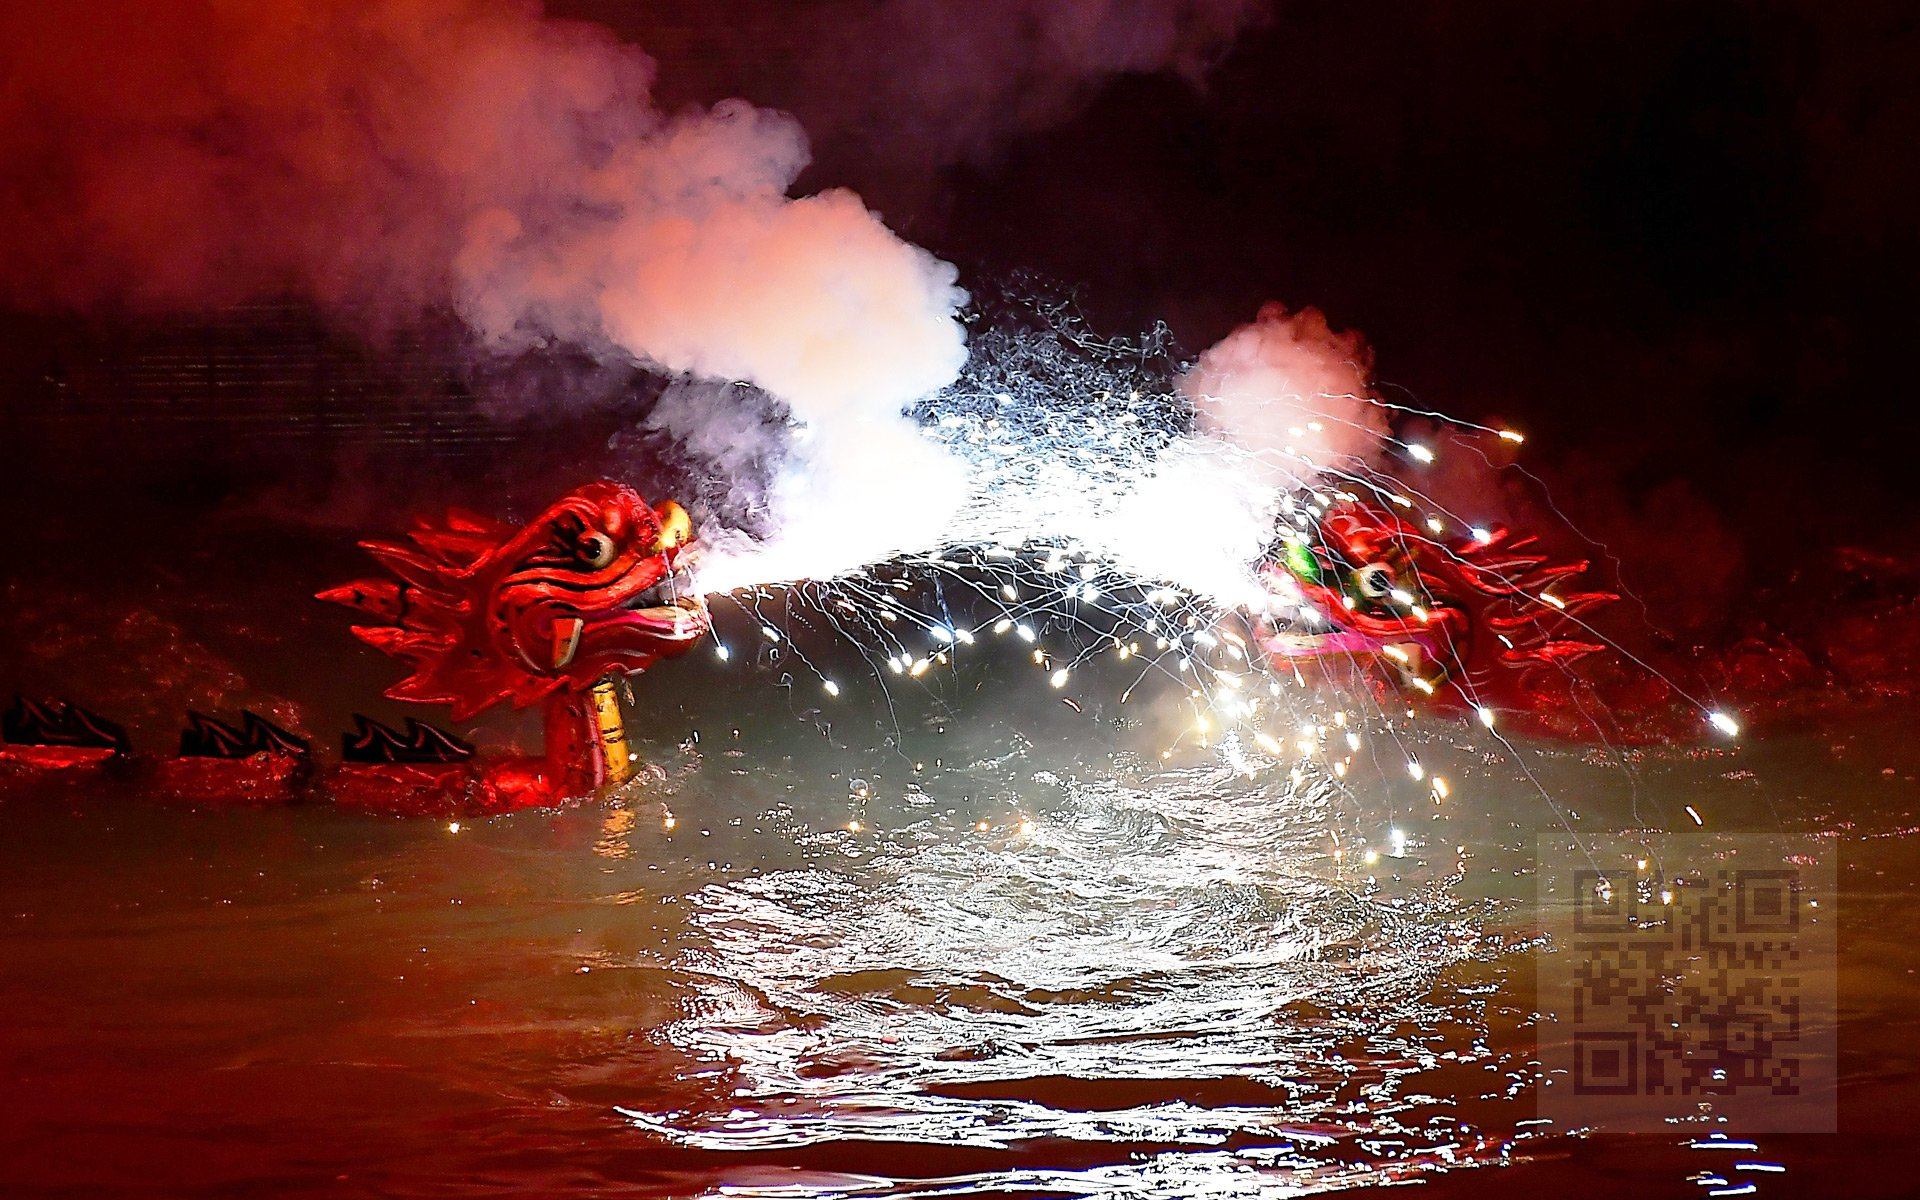 Dragons Fire - Water Puppet performance in Hanoi